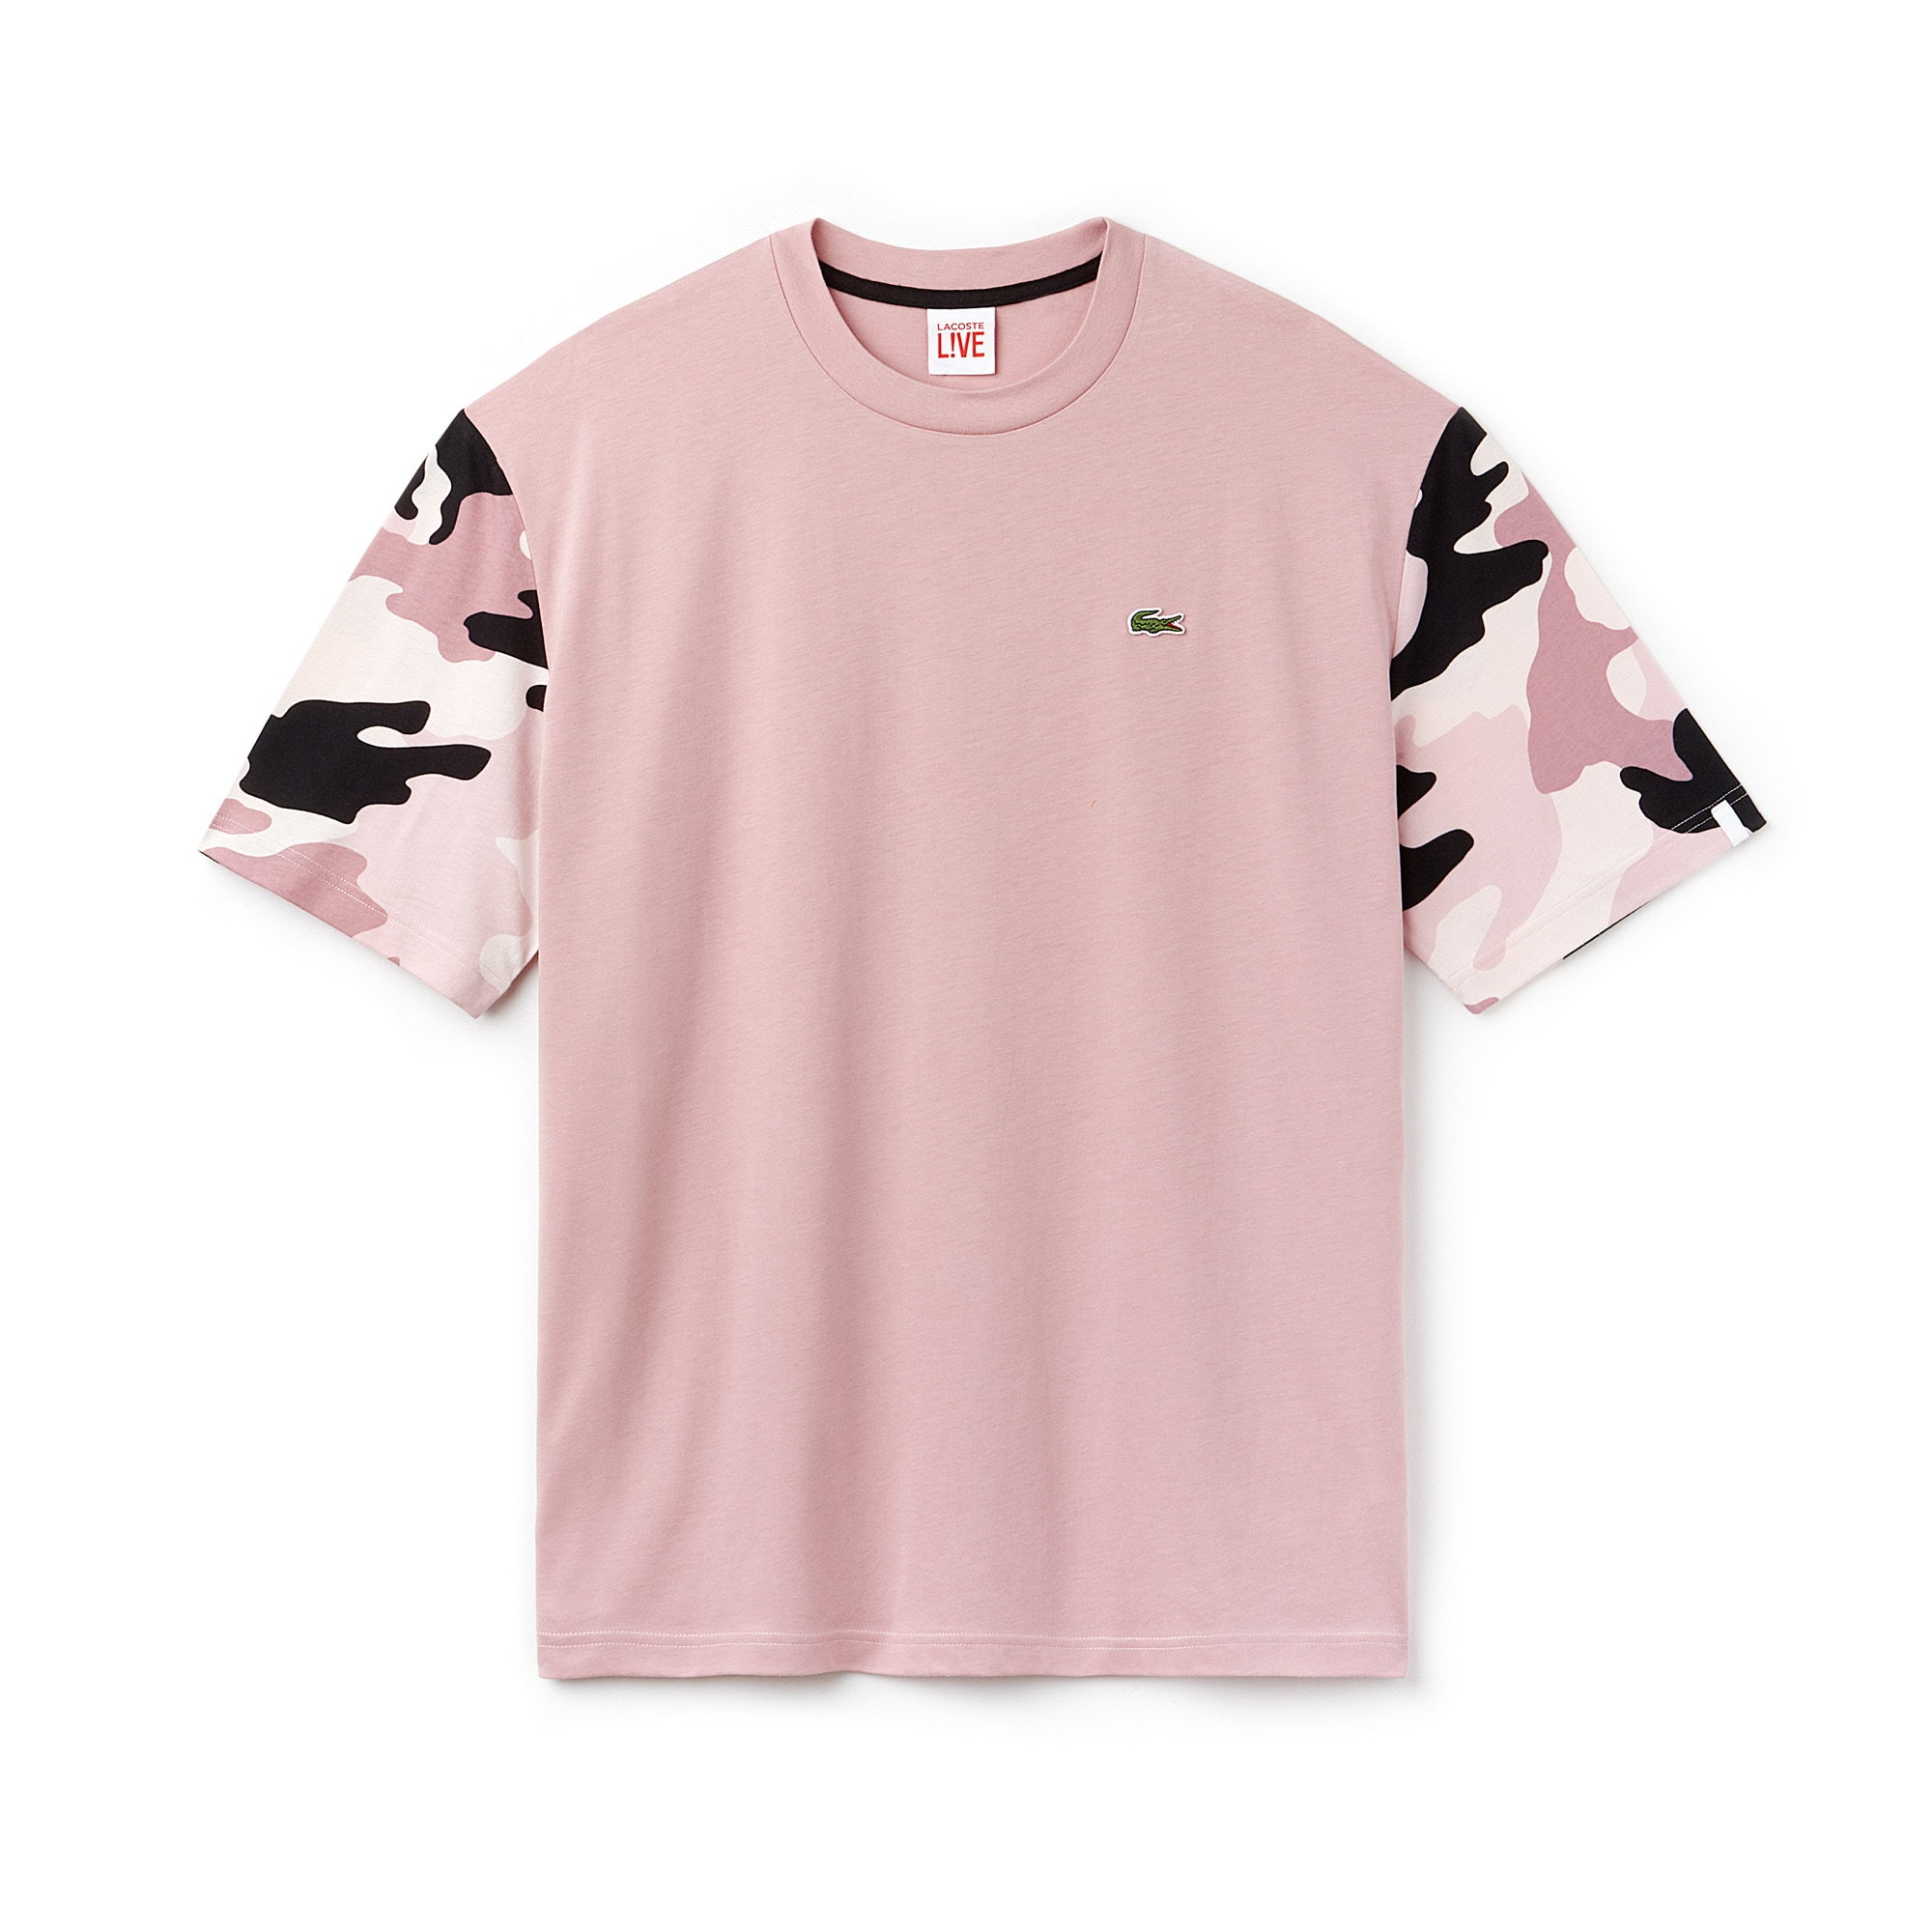 Men's Lacoste LIVE Crew Neck Print Sleeves Jersey T-shirt